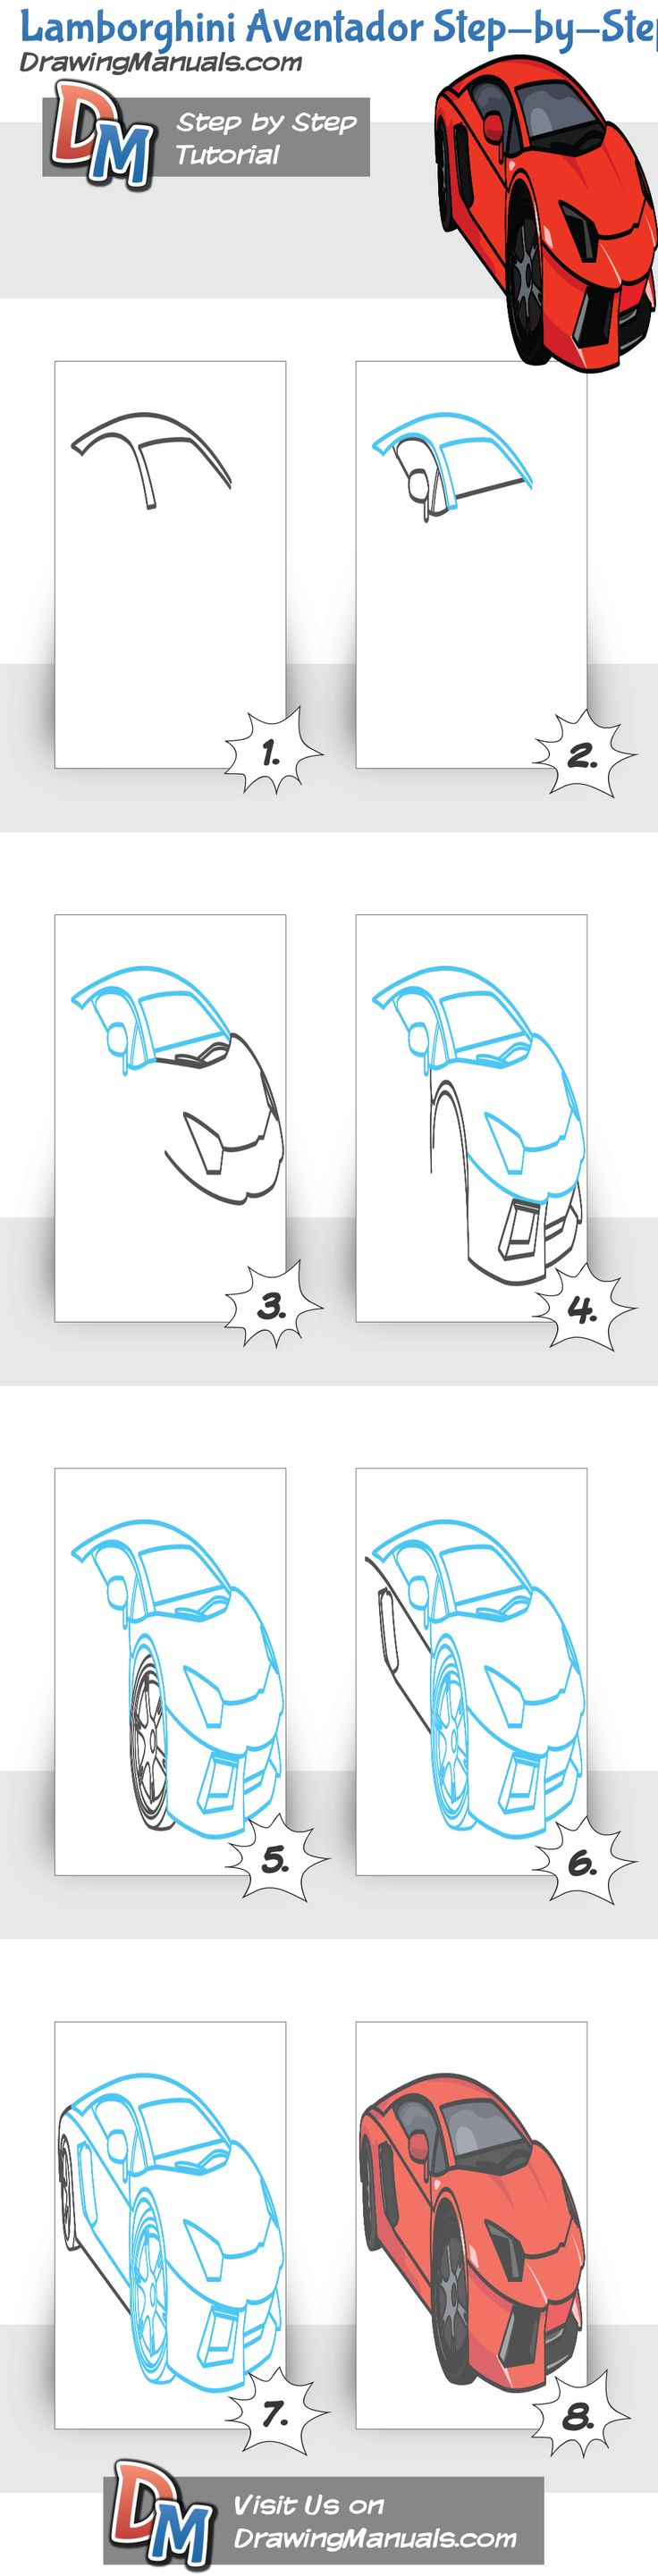 17 Best images about How to draw muscle cars on Pinterest ...